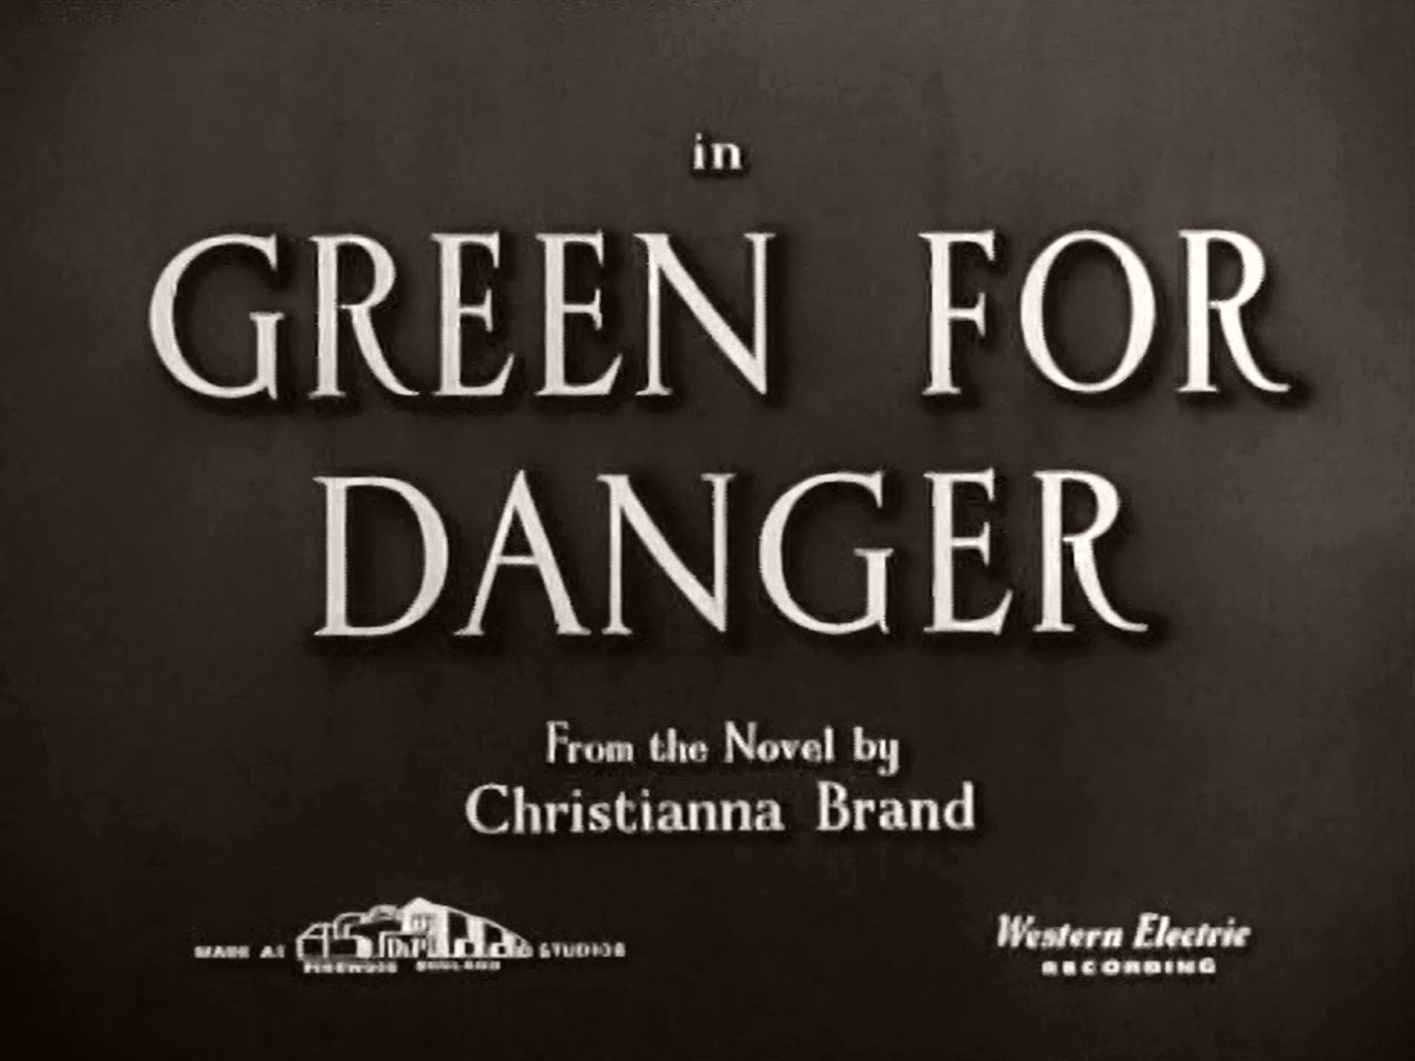 Main title from Green for Danger (1947) (2).  In Green for Danger from the novel by Christianna Brand.  Made at Pinewood England Studios.  Western Electric recording